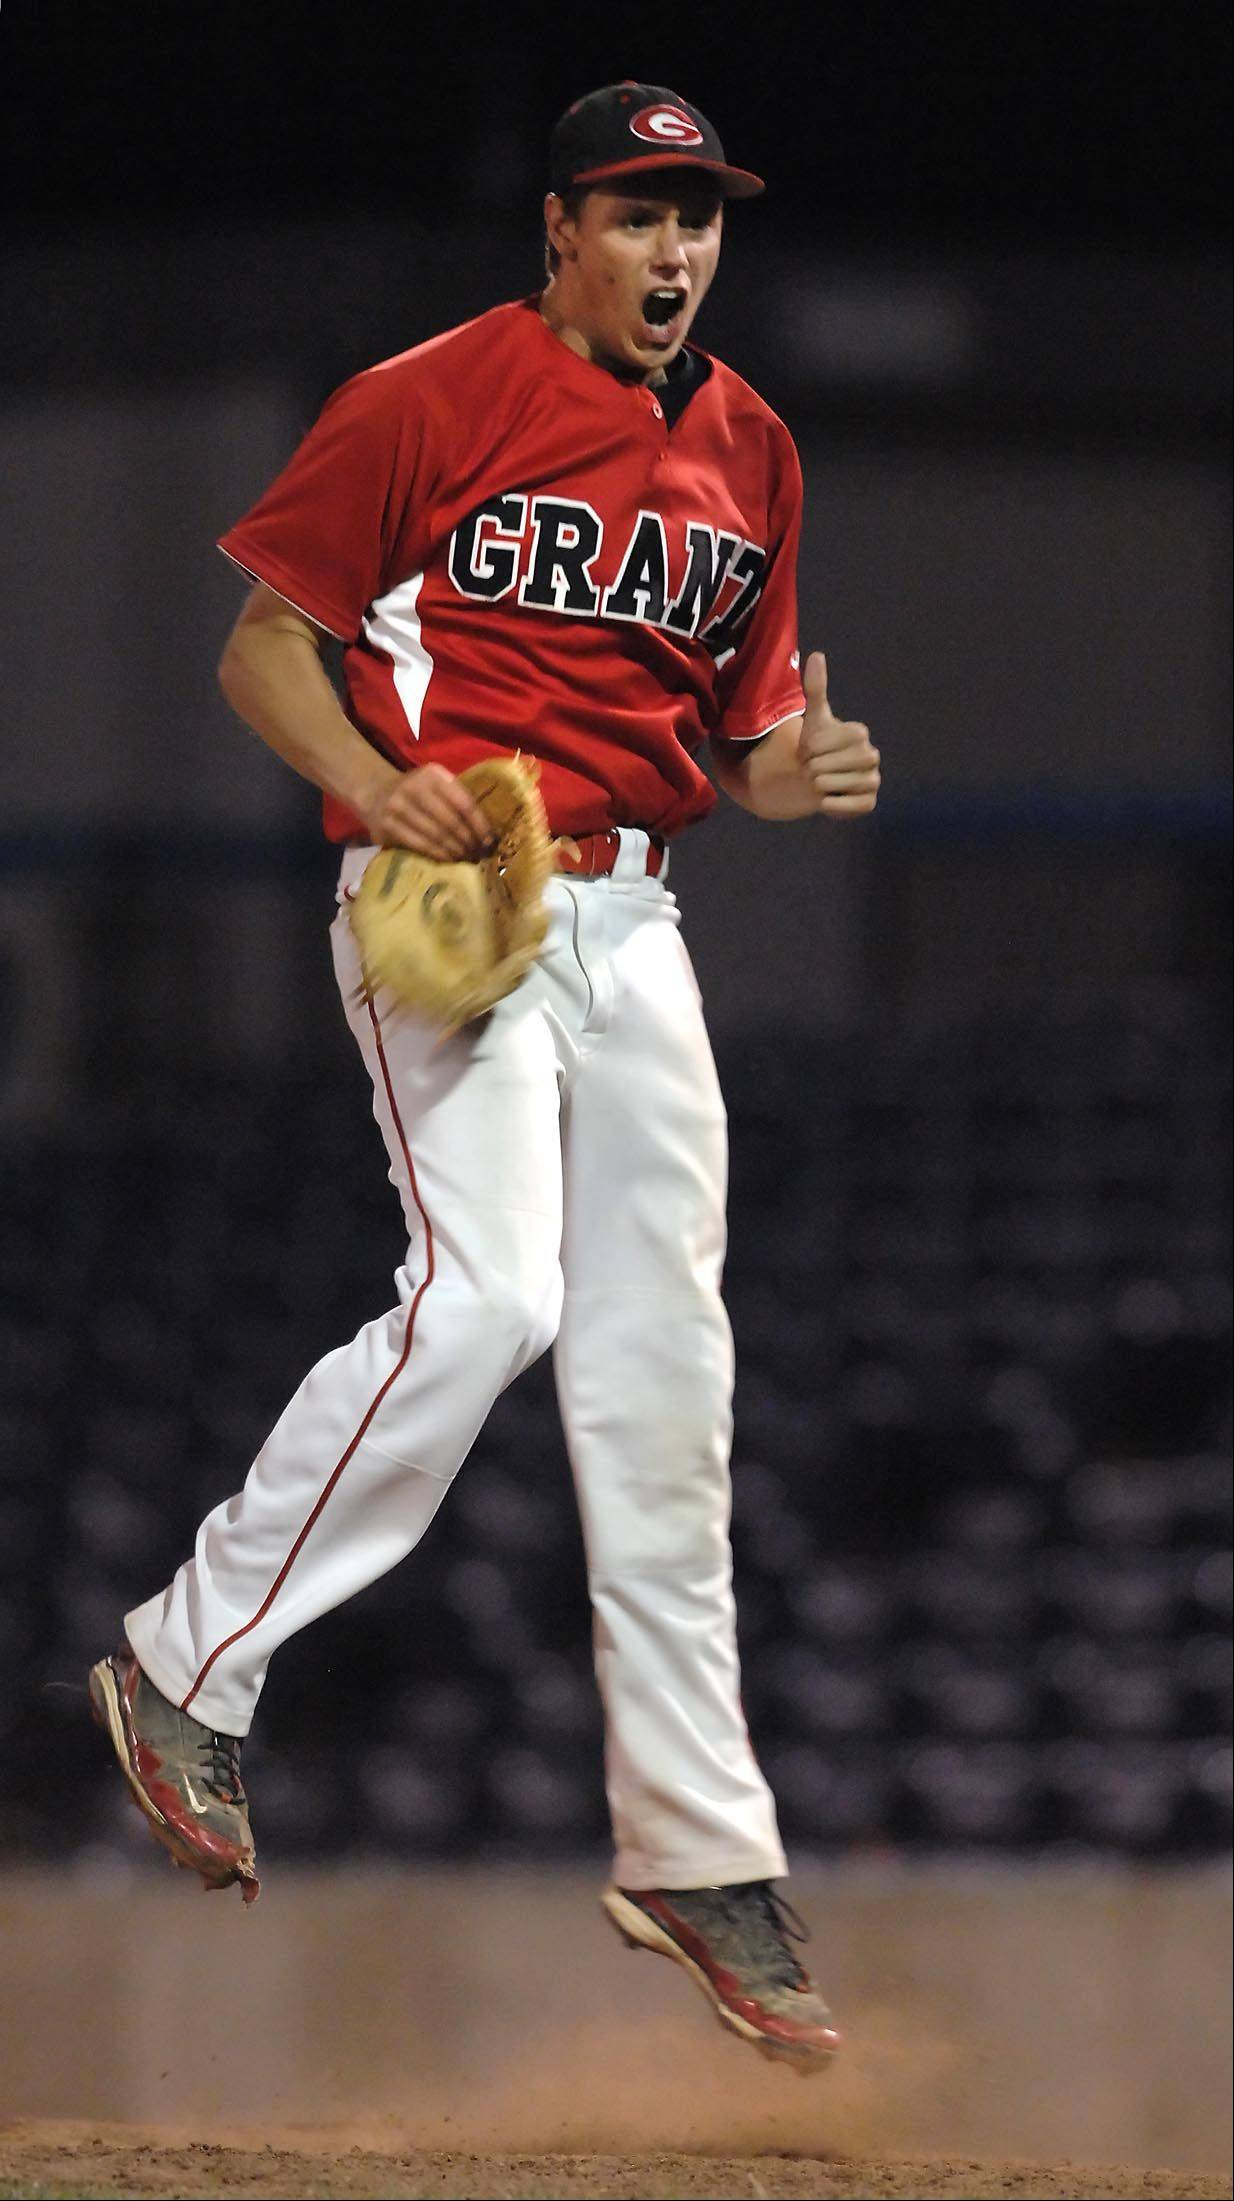 Grant pitcher Jared Helmich jumps off the mound after striking out the last batter to beat Schaumburg 7-0 in the Class 4A Rockford supersectional at Riverhawks Stadium on Monday. He allowed only 2 hits.